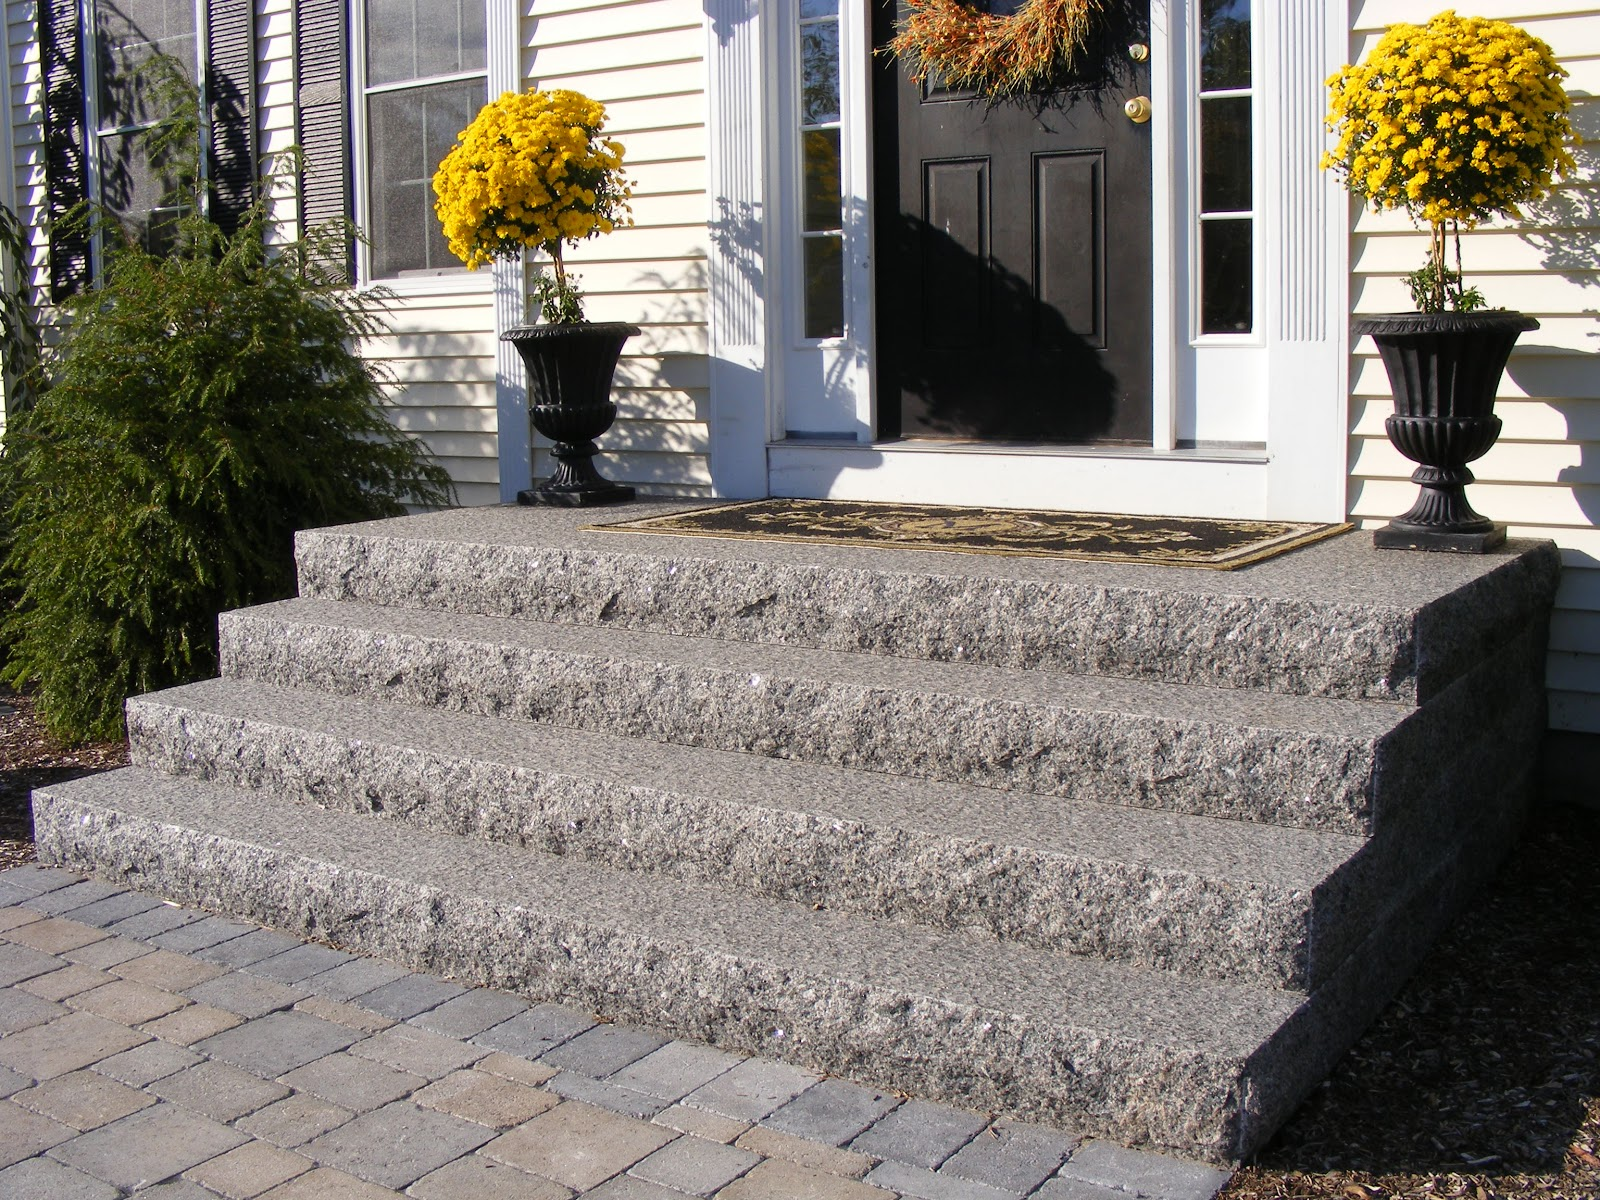 Gold chrysanthemums and Caledonia granite steps